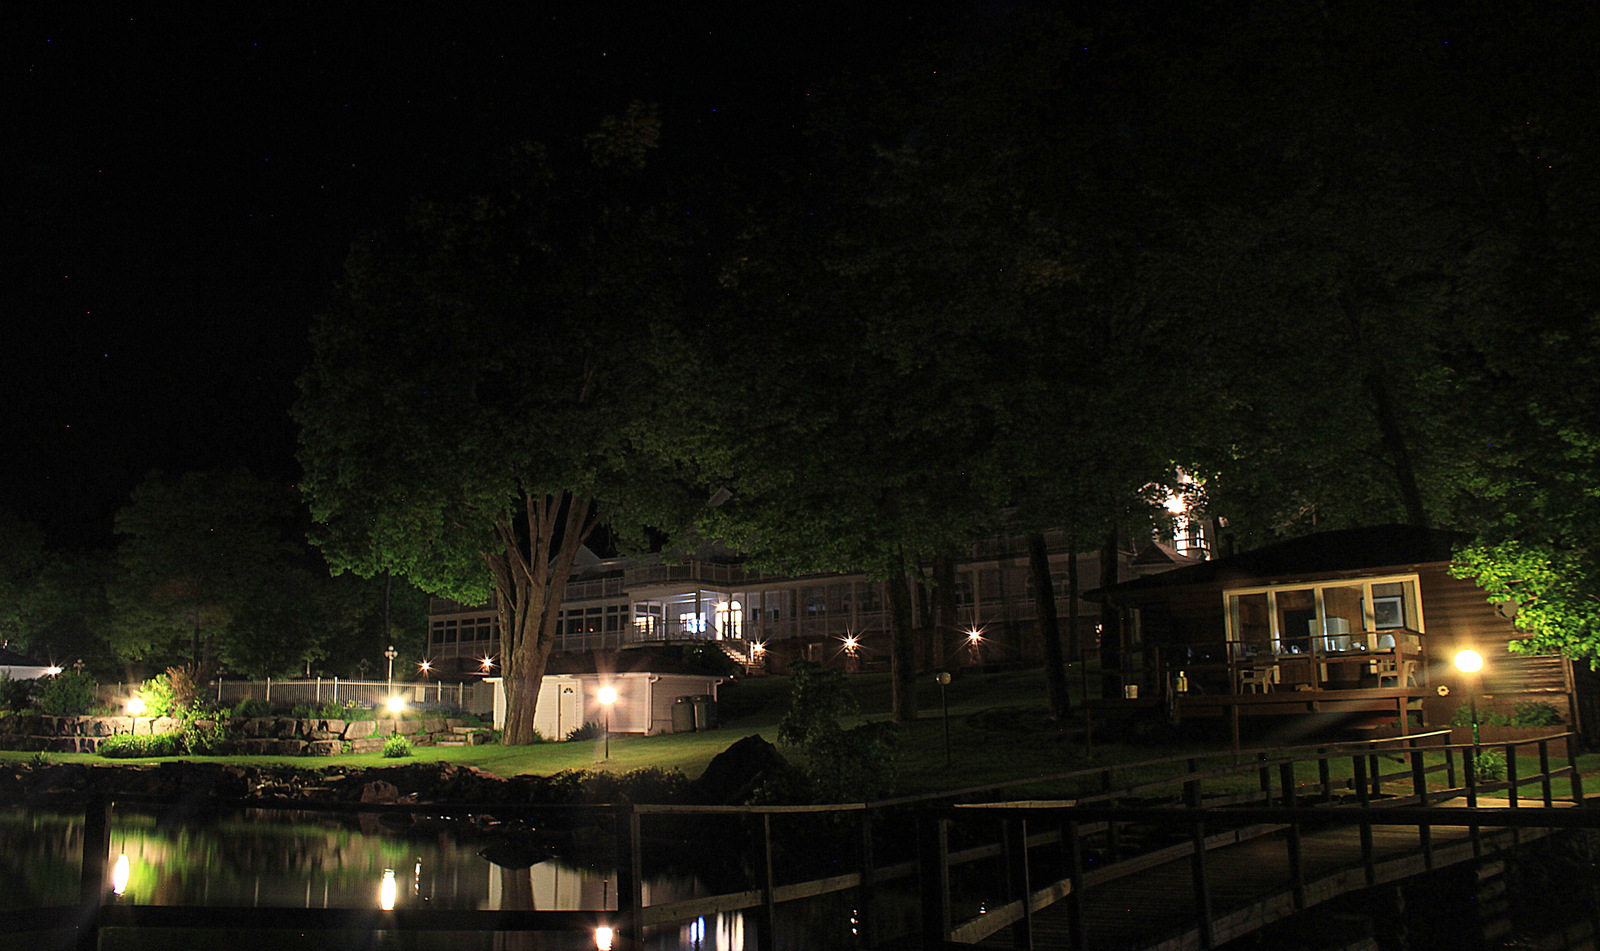 Viamede Resort Dock at Night